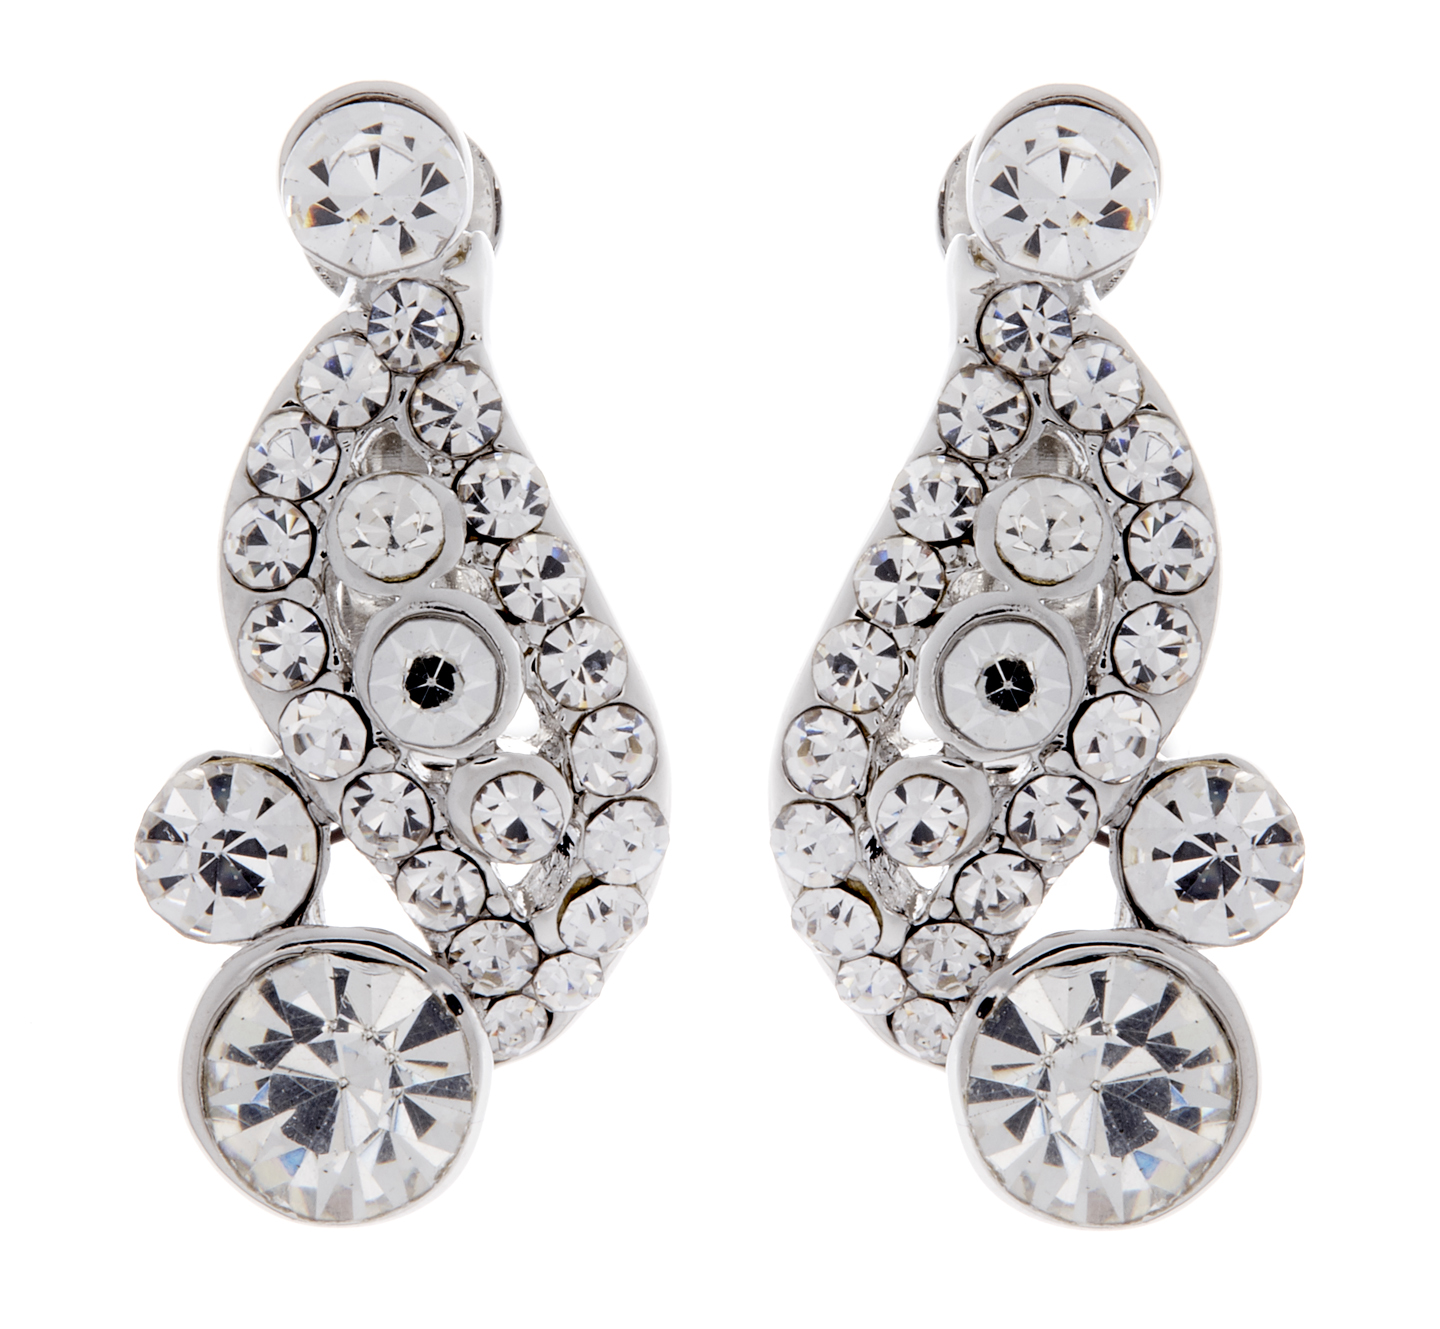 Clip On Earrings - Alana - silver stud earring with clear crystals and stones